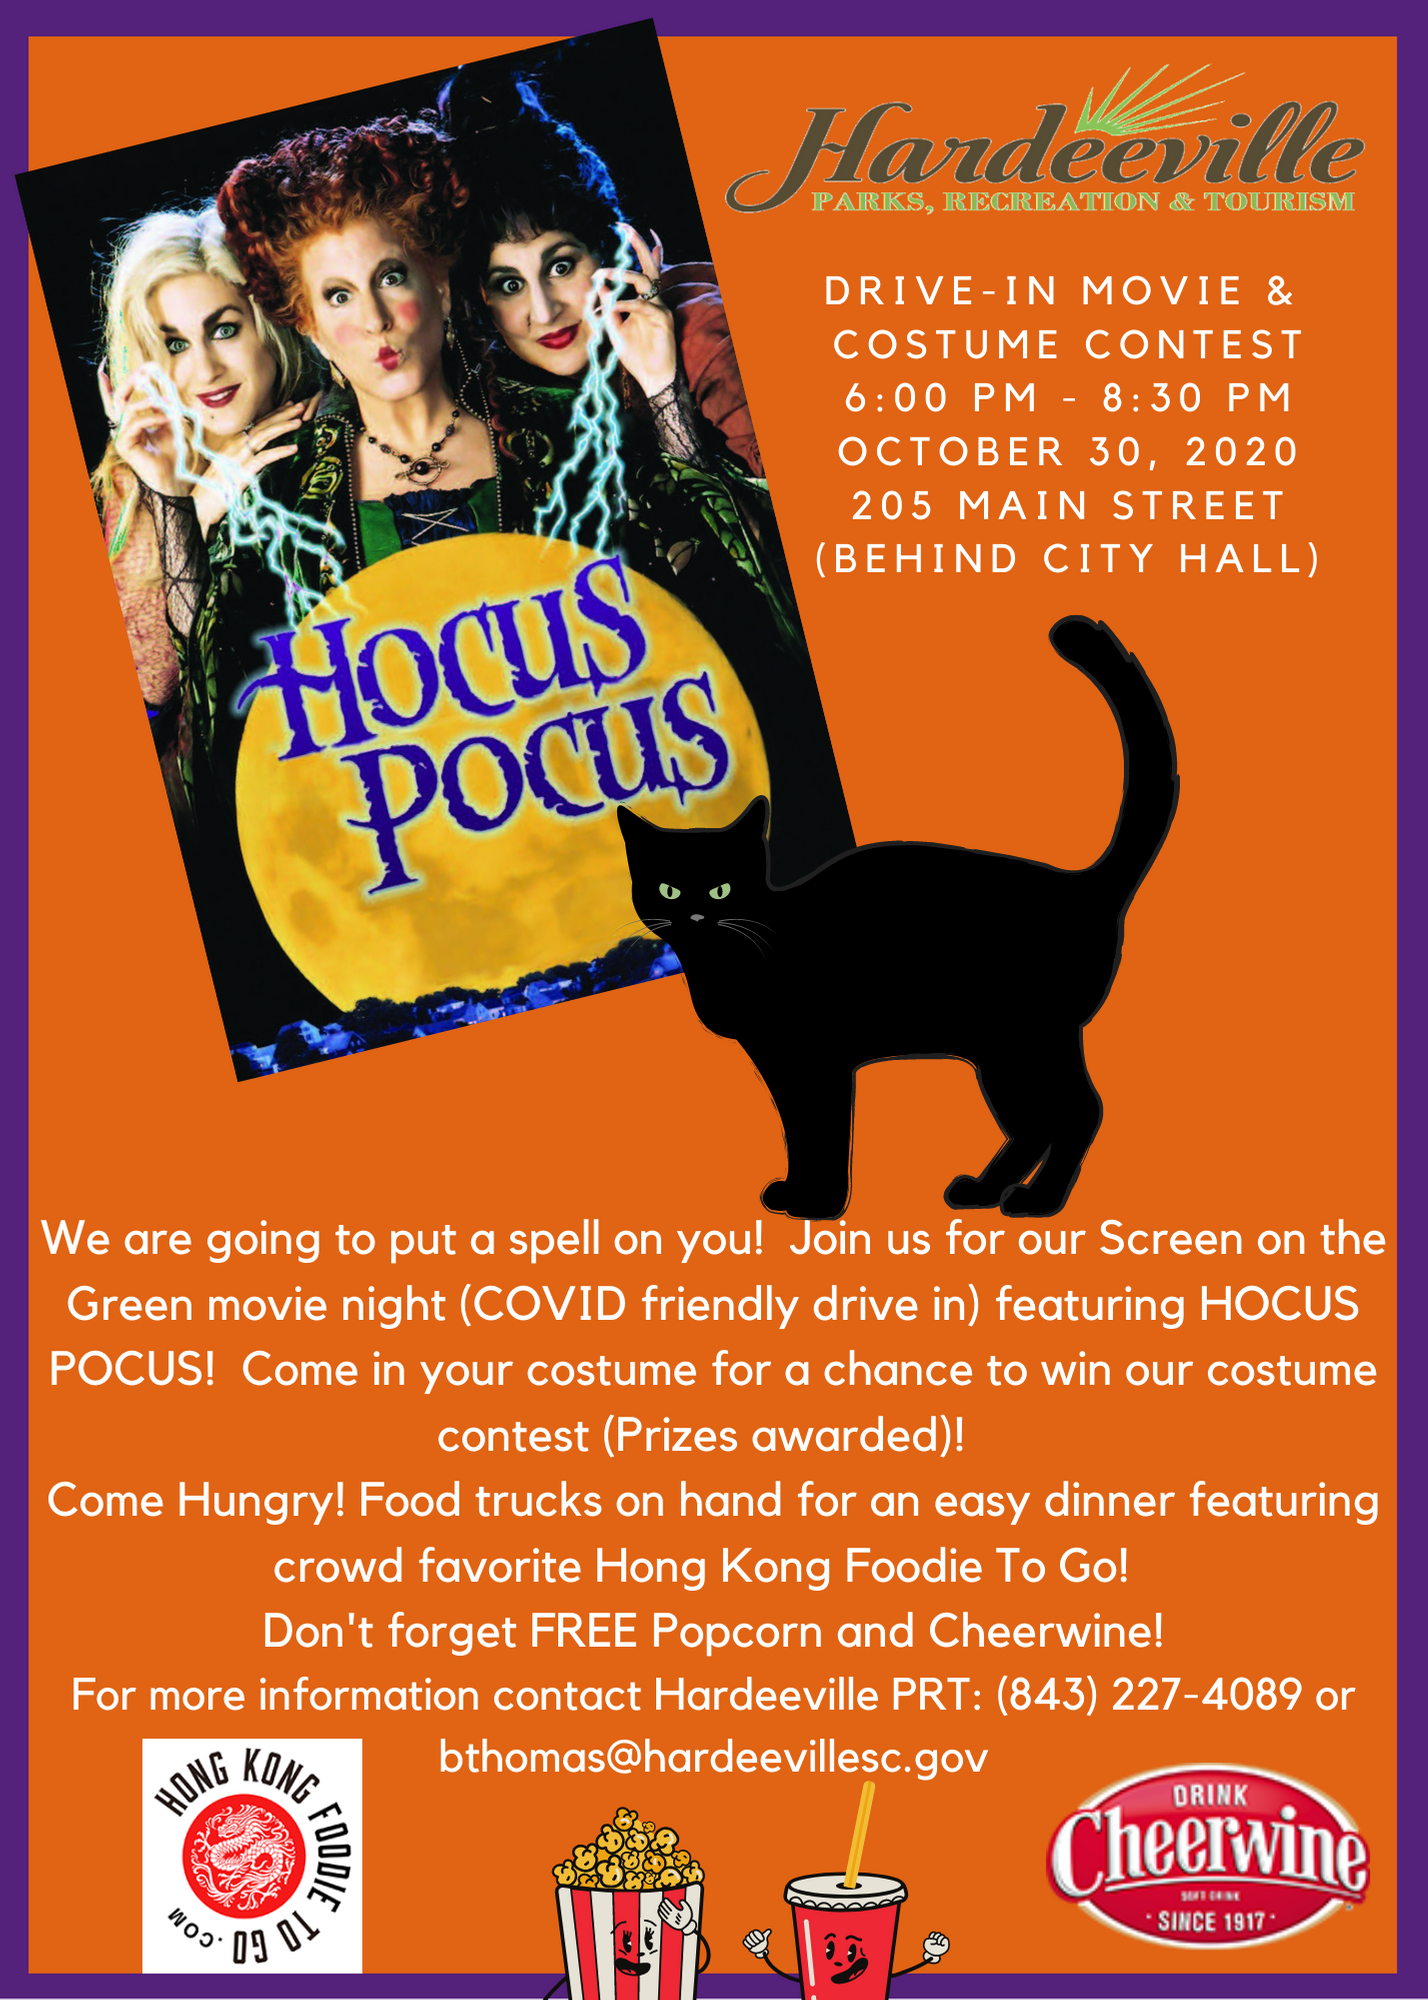 Watch Hocus Pocus with us on Friday, October 30th at 6 PM and participate in a costume contest.